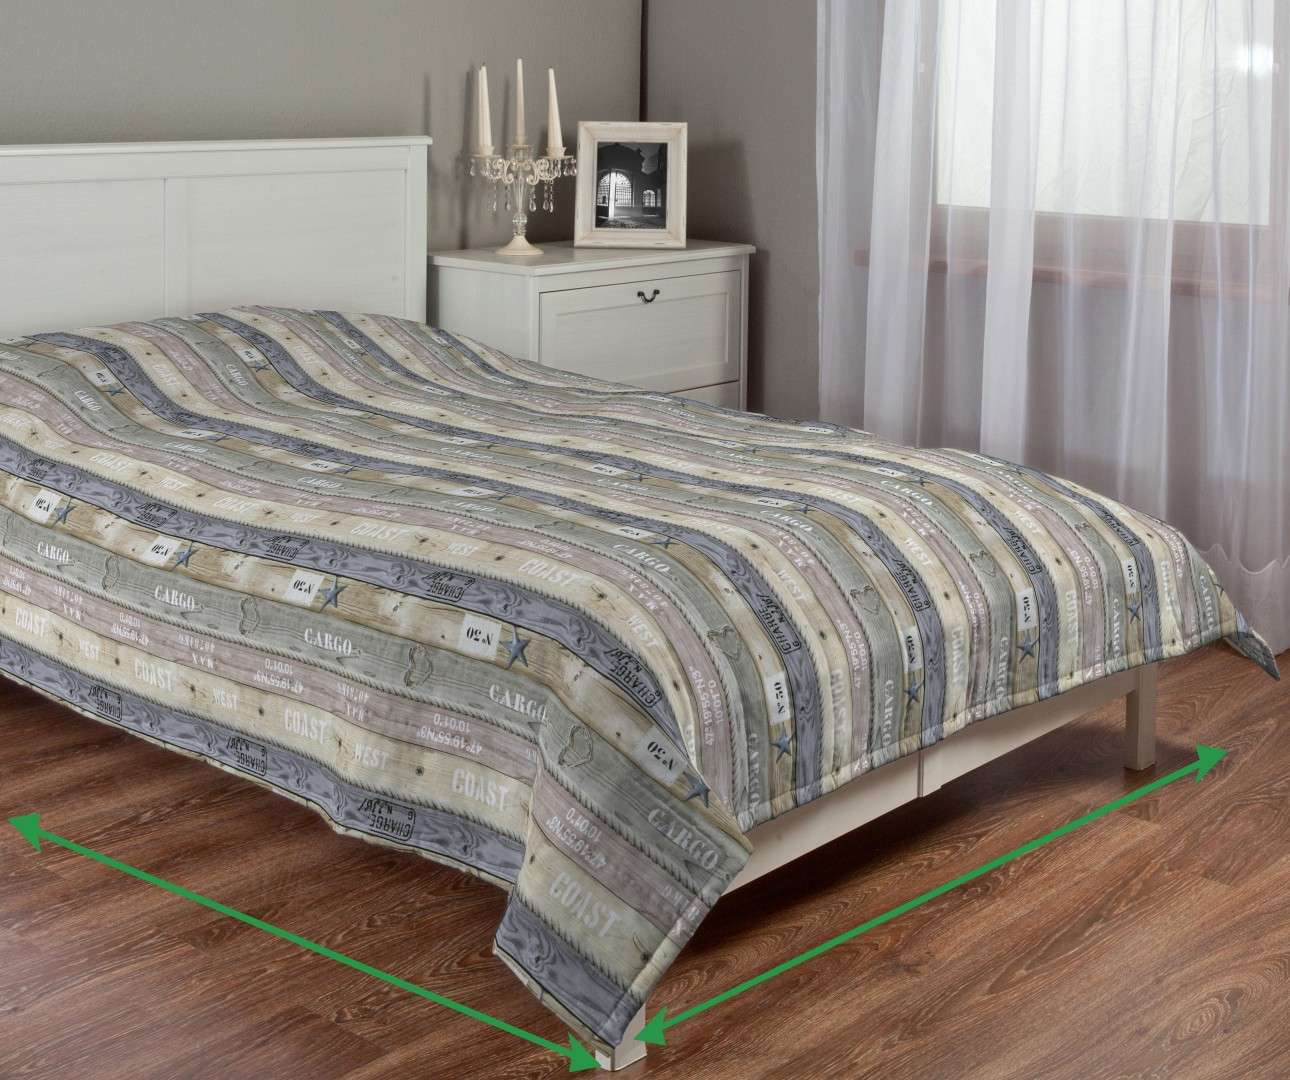 Quilted throw (vertical quilt pattern) in collection Marina, fabric: 140-16